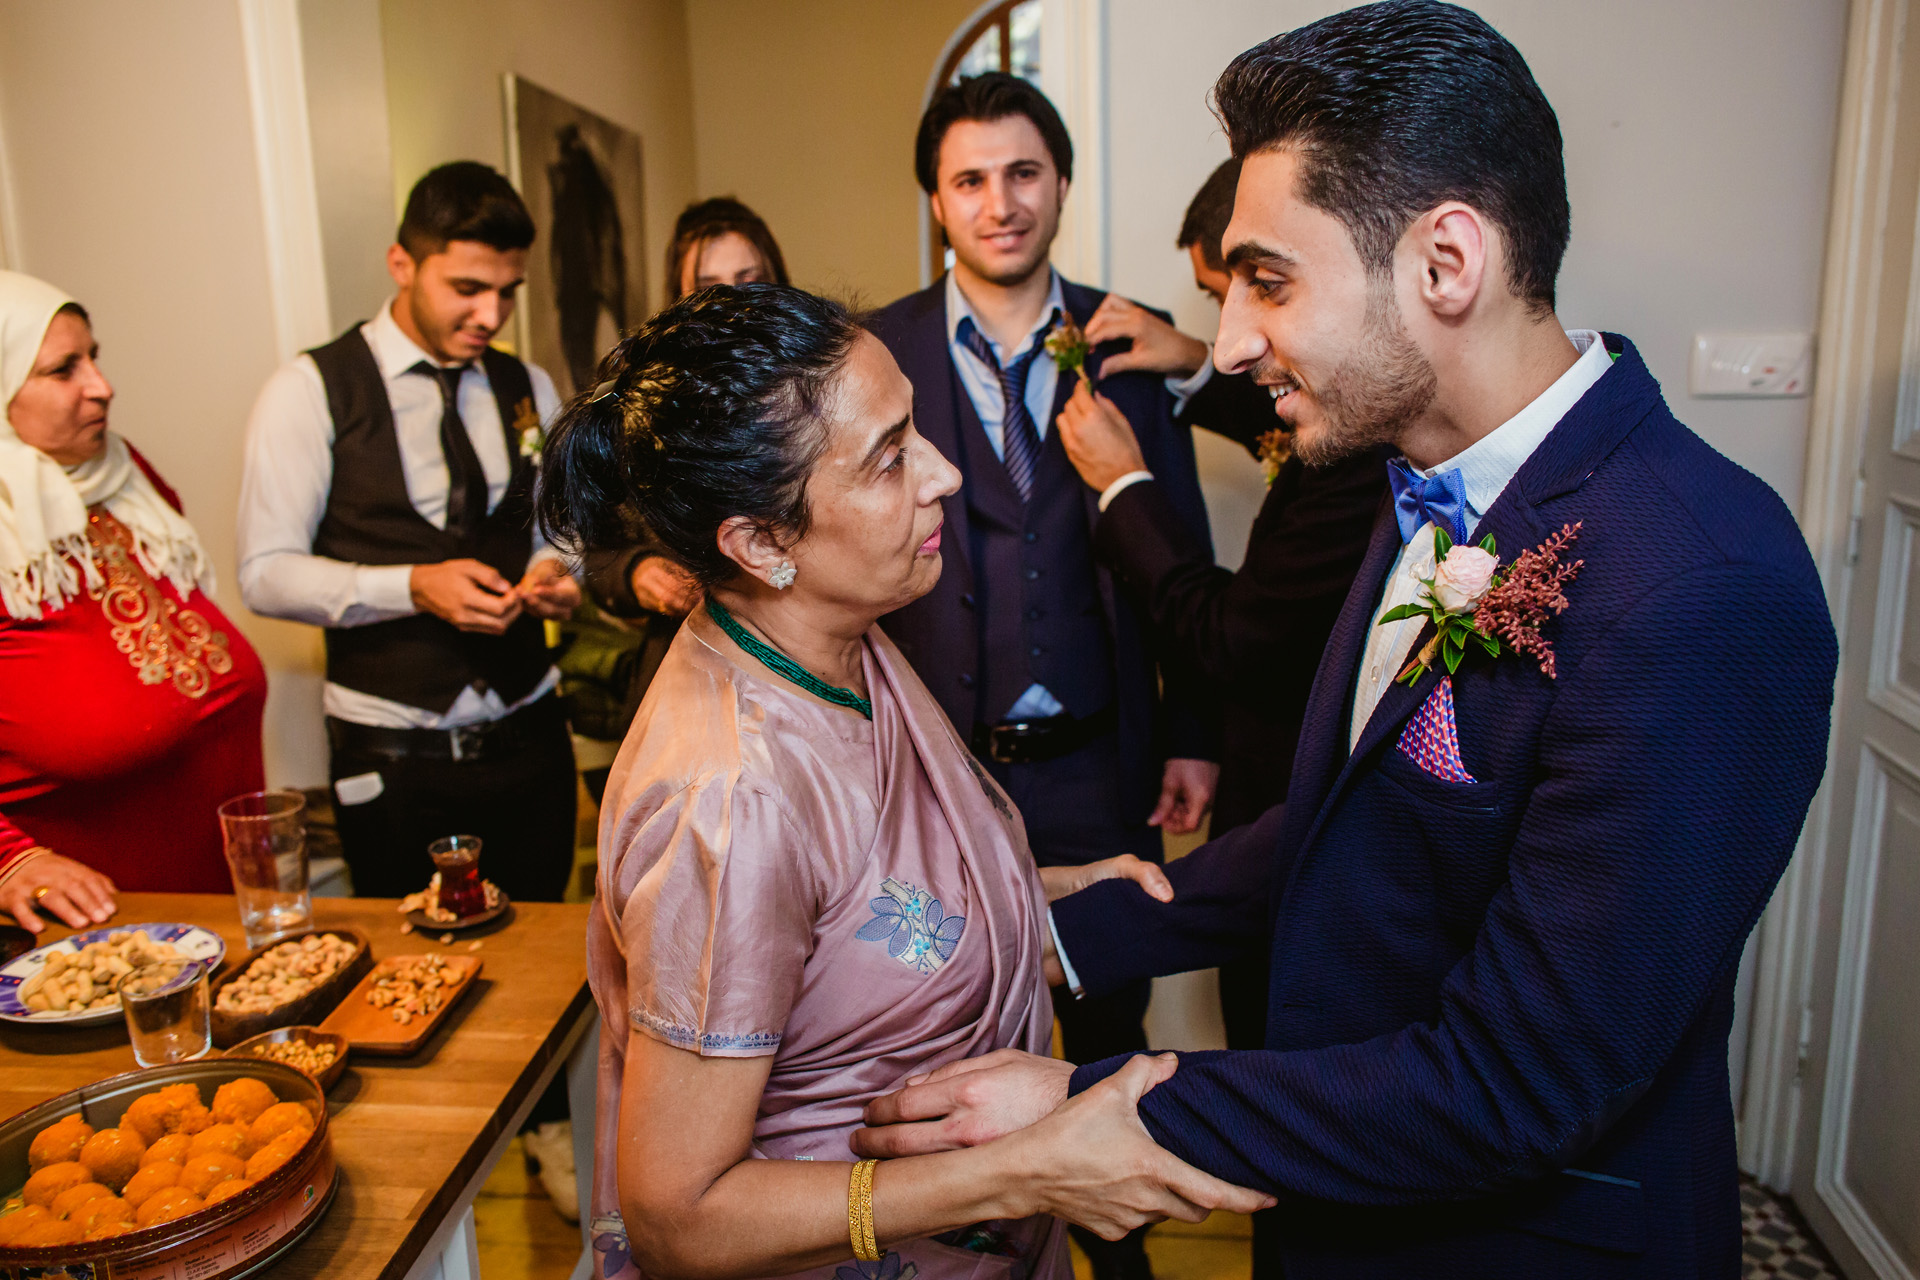 Istanbul Elopement Home Party Photo | the bride's mom pulls her new son-in-law aside to give him her well-wishes